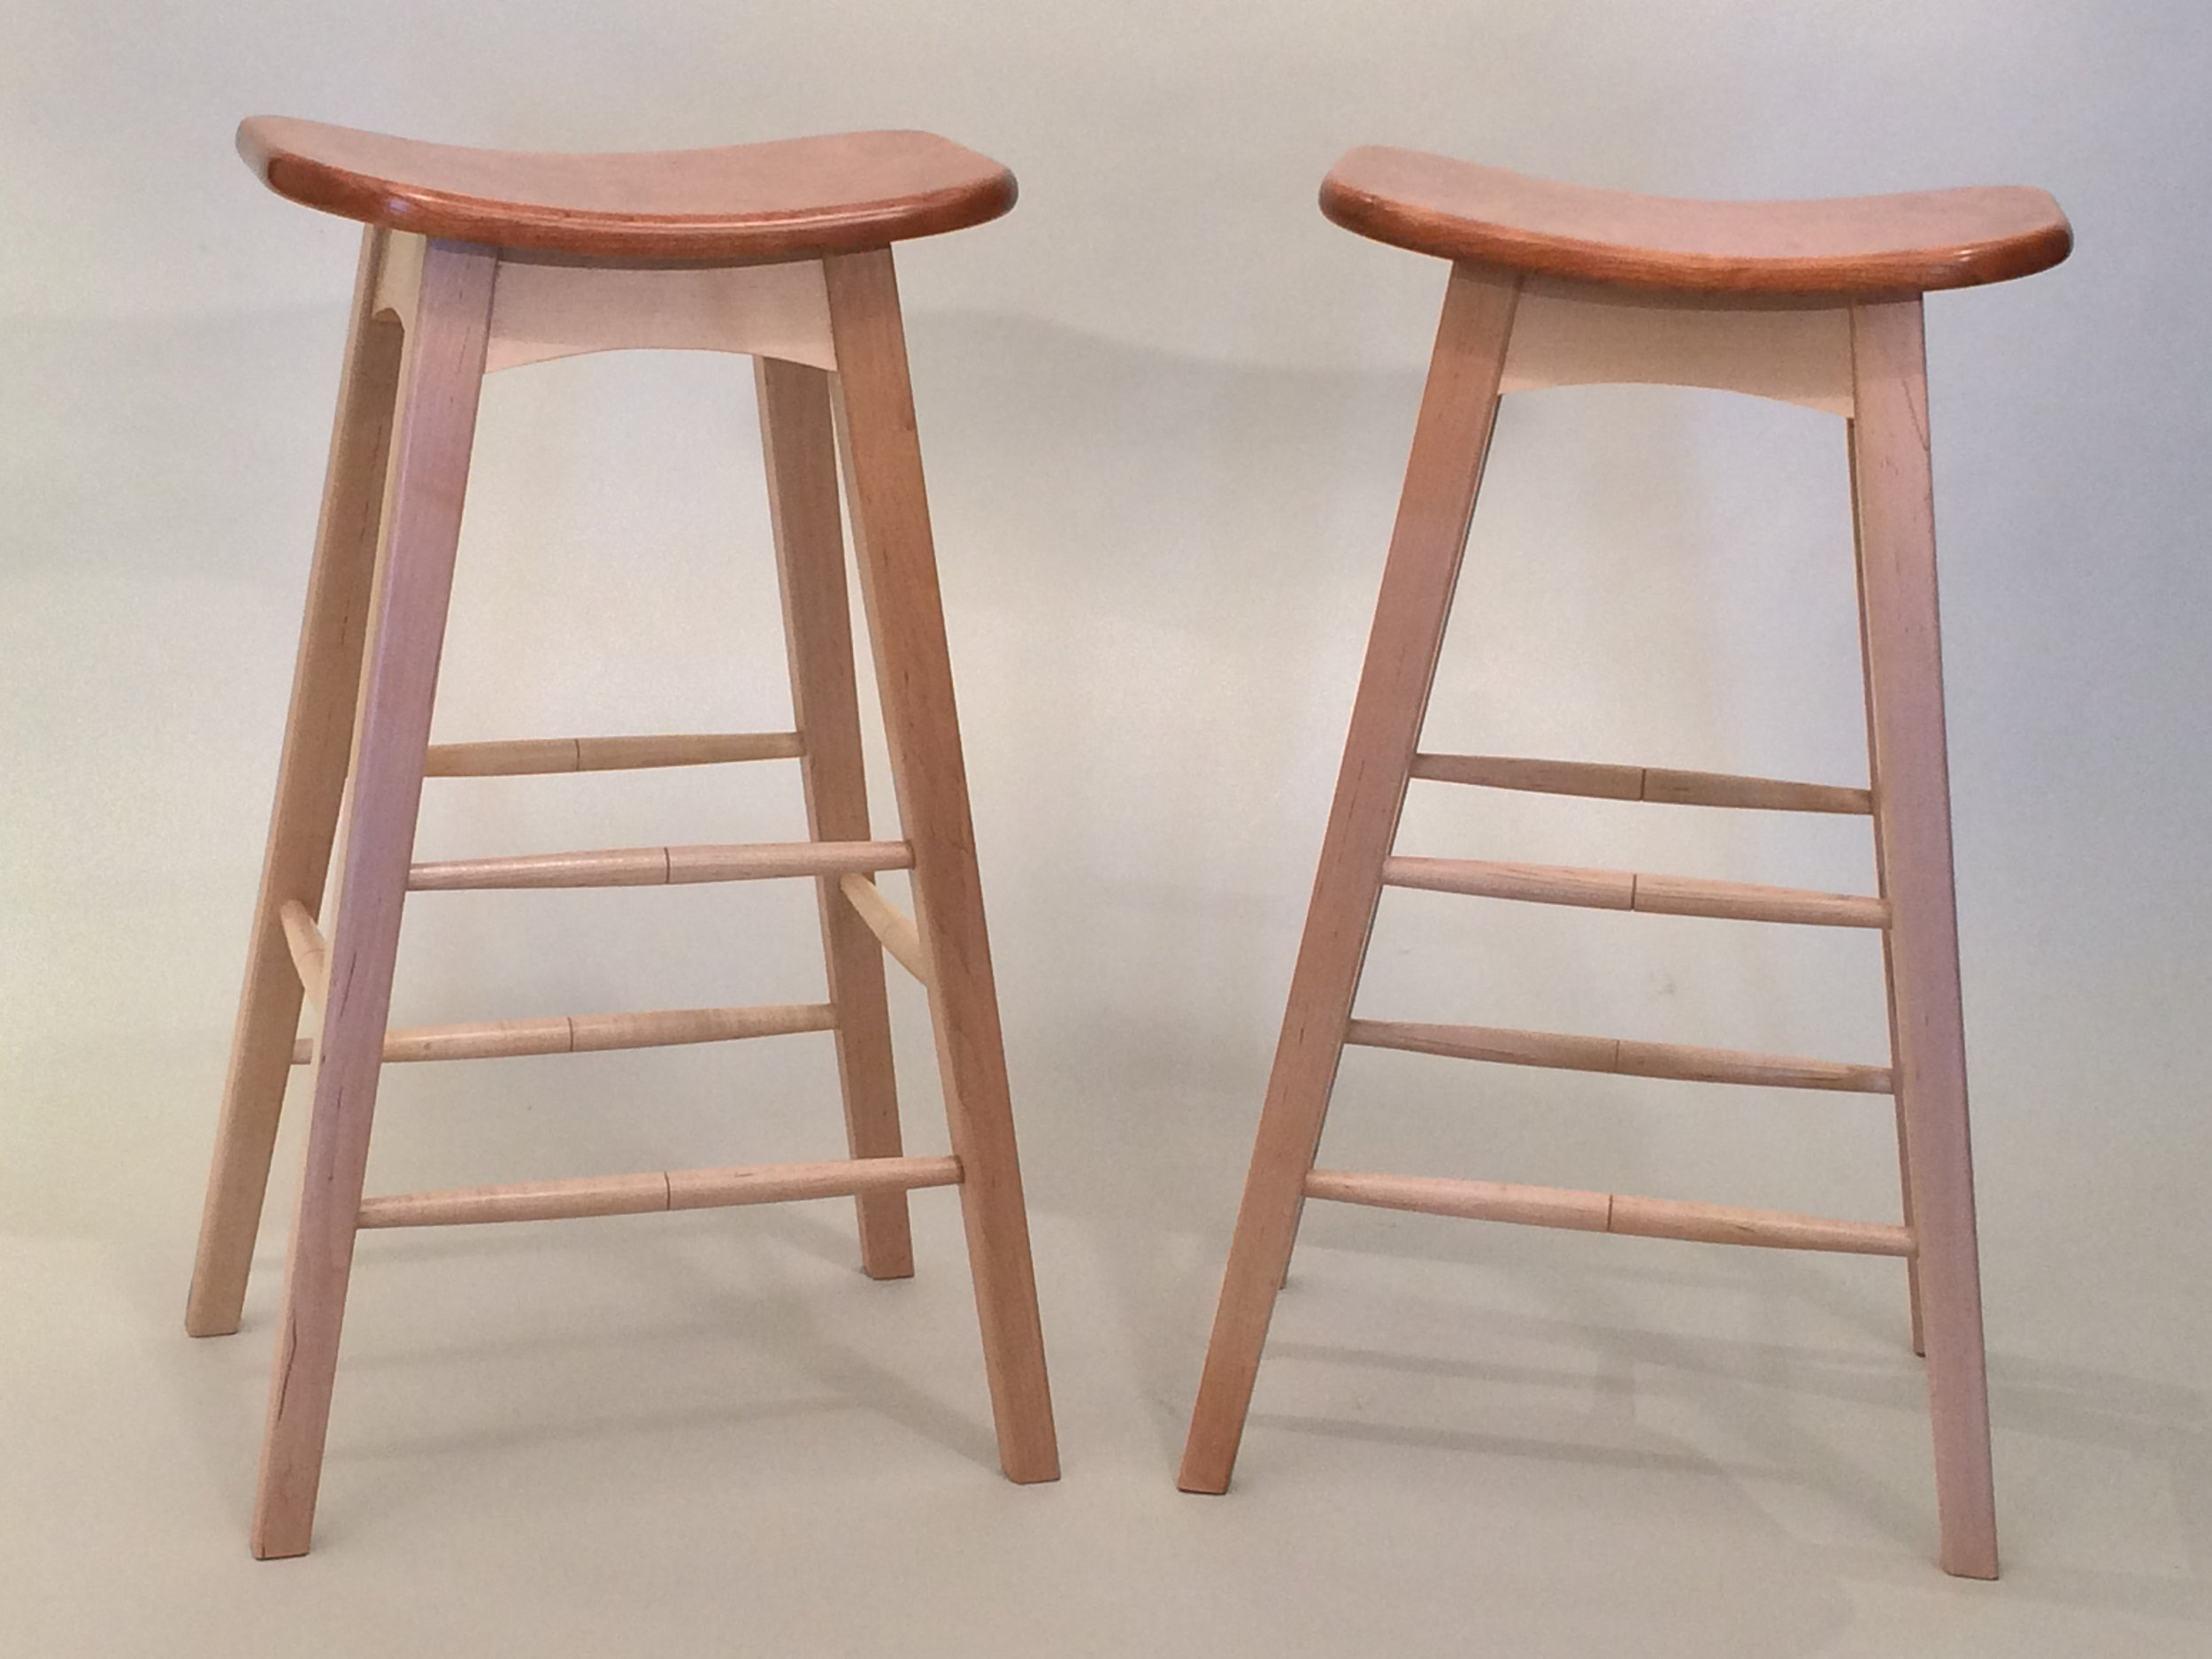 This a pair of bar stools will be used at a sewing bench. Legs, rails and stretchers are maple and the seats are cherry. The seats were shaped out of 2 inch thick pieces of cherry. The finish is an oil and urethane top coat. The stools are 29 inches tall. Price is $450.00 each.